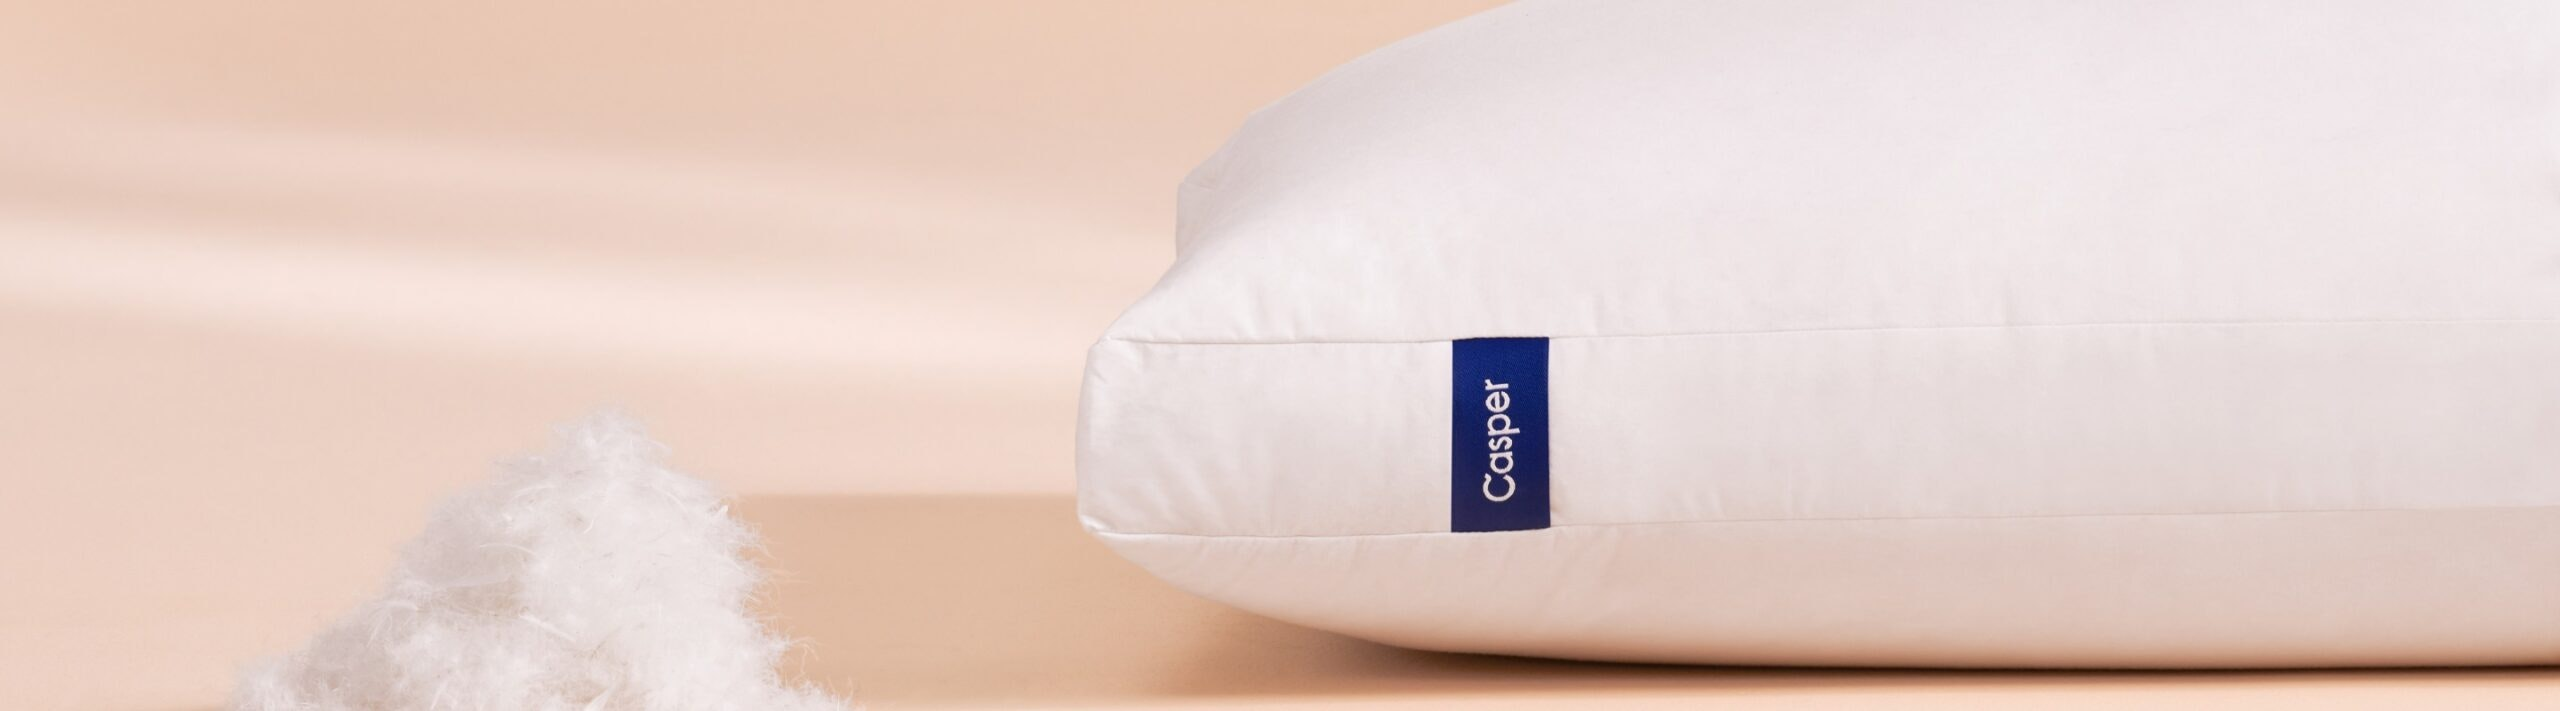 Casper Down Pillow and a sample of filling next to it